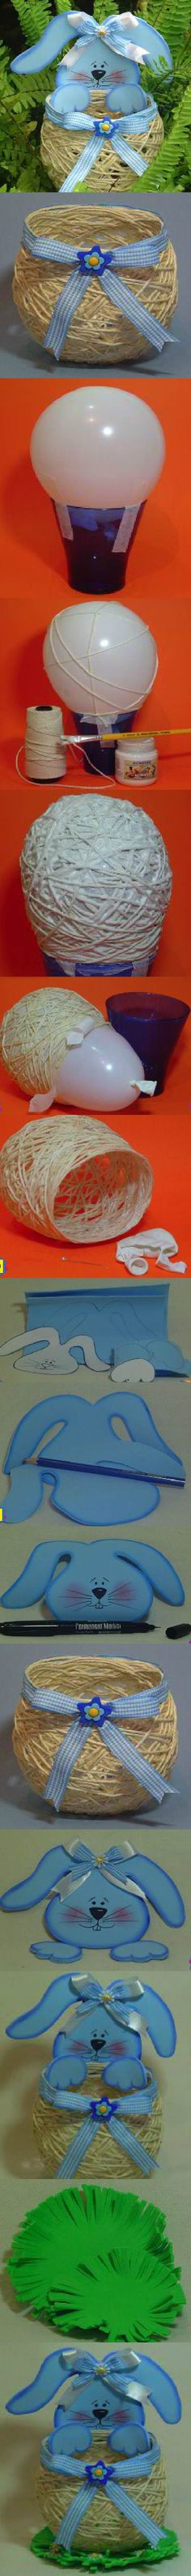 Easter is around the corner ! Here is a super cute idea to make a yarn DIY string Easter basket. The secret is using a balloon. Easter Party, Easter Gift, Happy Easter, Easter Bunny, Easter Eggs, Spring Crafts, Holiday Crafts, Holiday Fun, Easter Projects